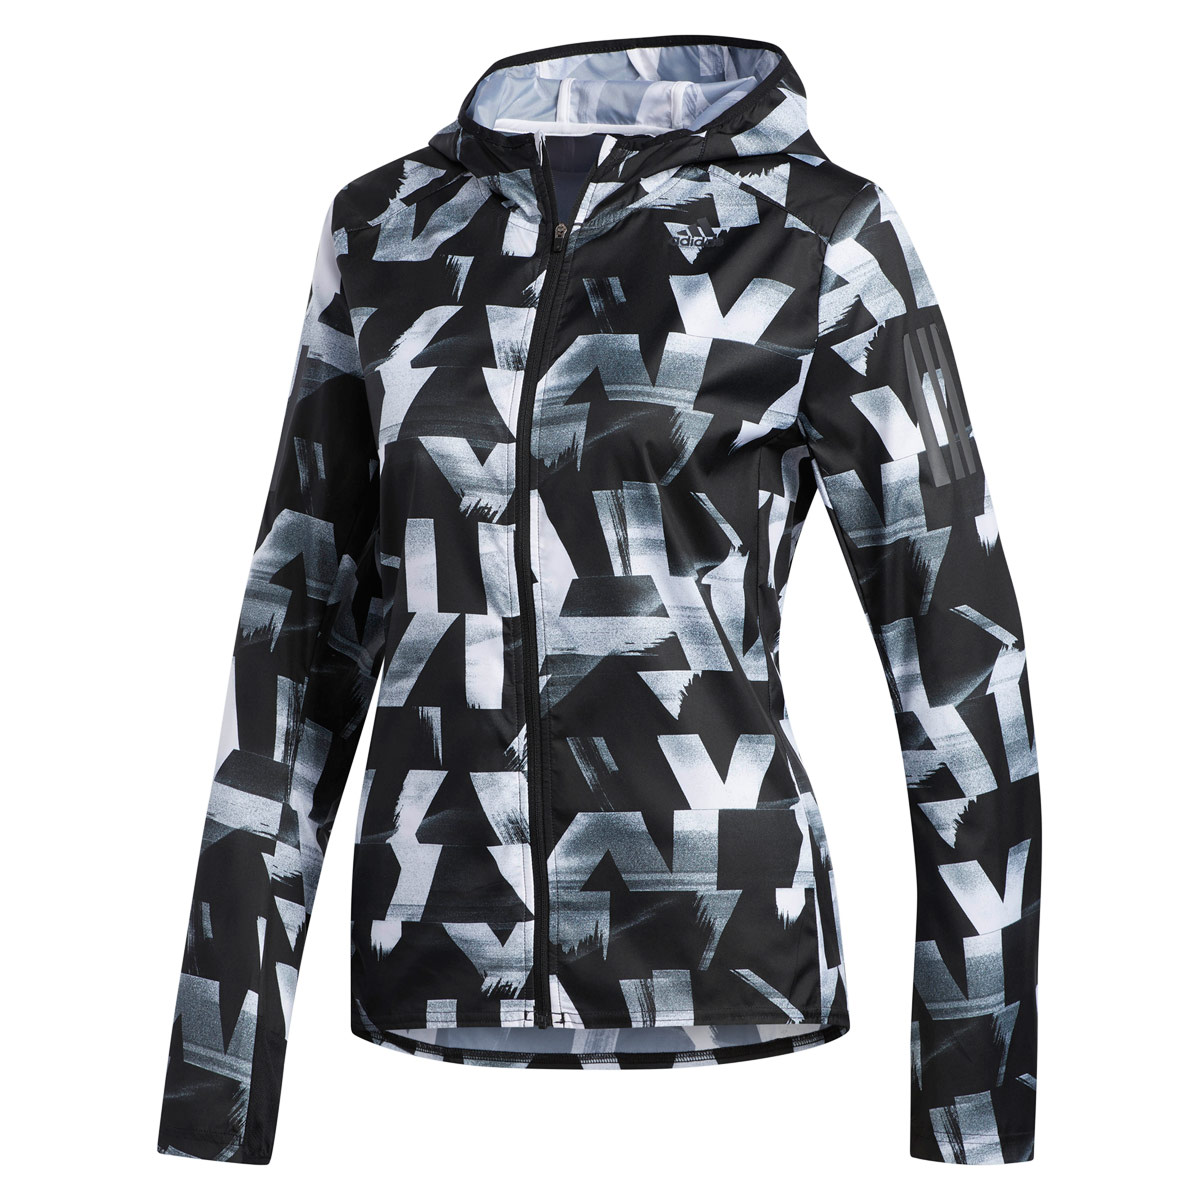 adidas Own the Run Speed Splits Jacket - Running jackets for Women - Black   fdc85bfc31